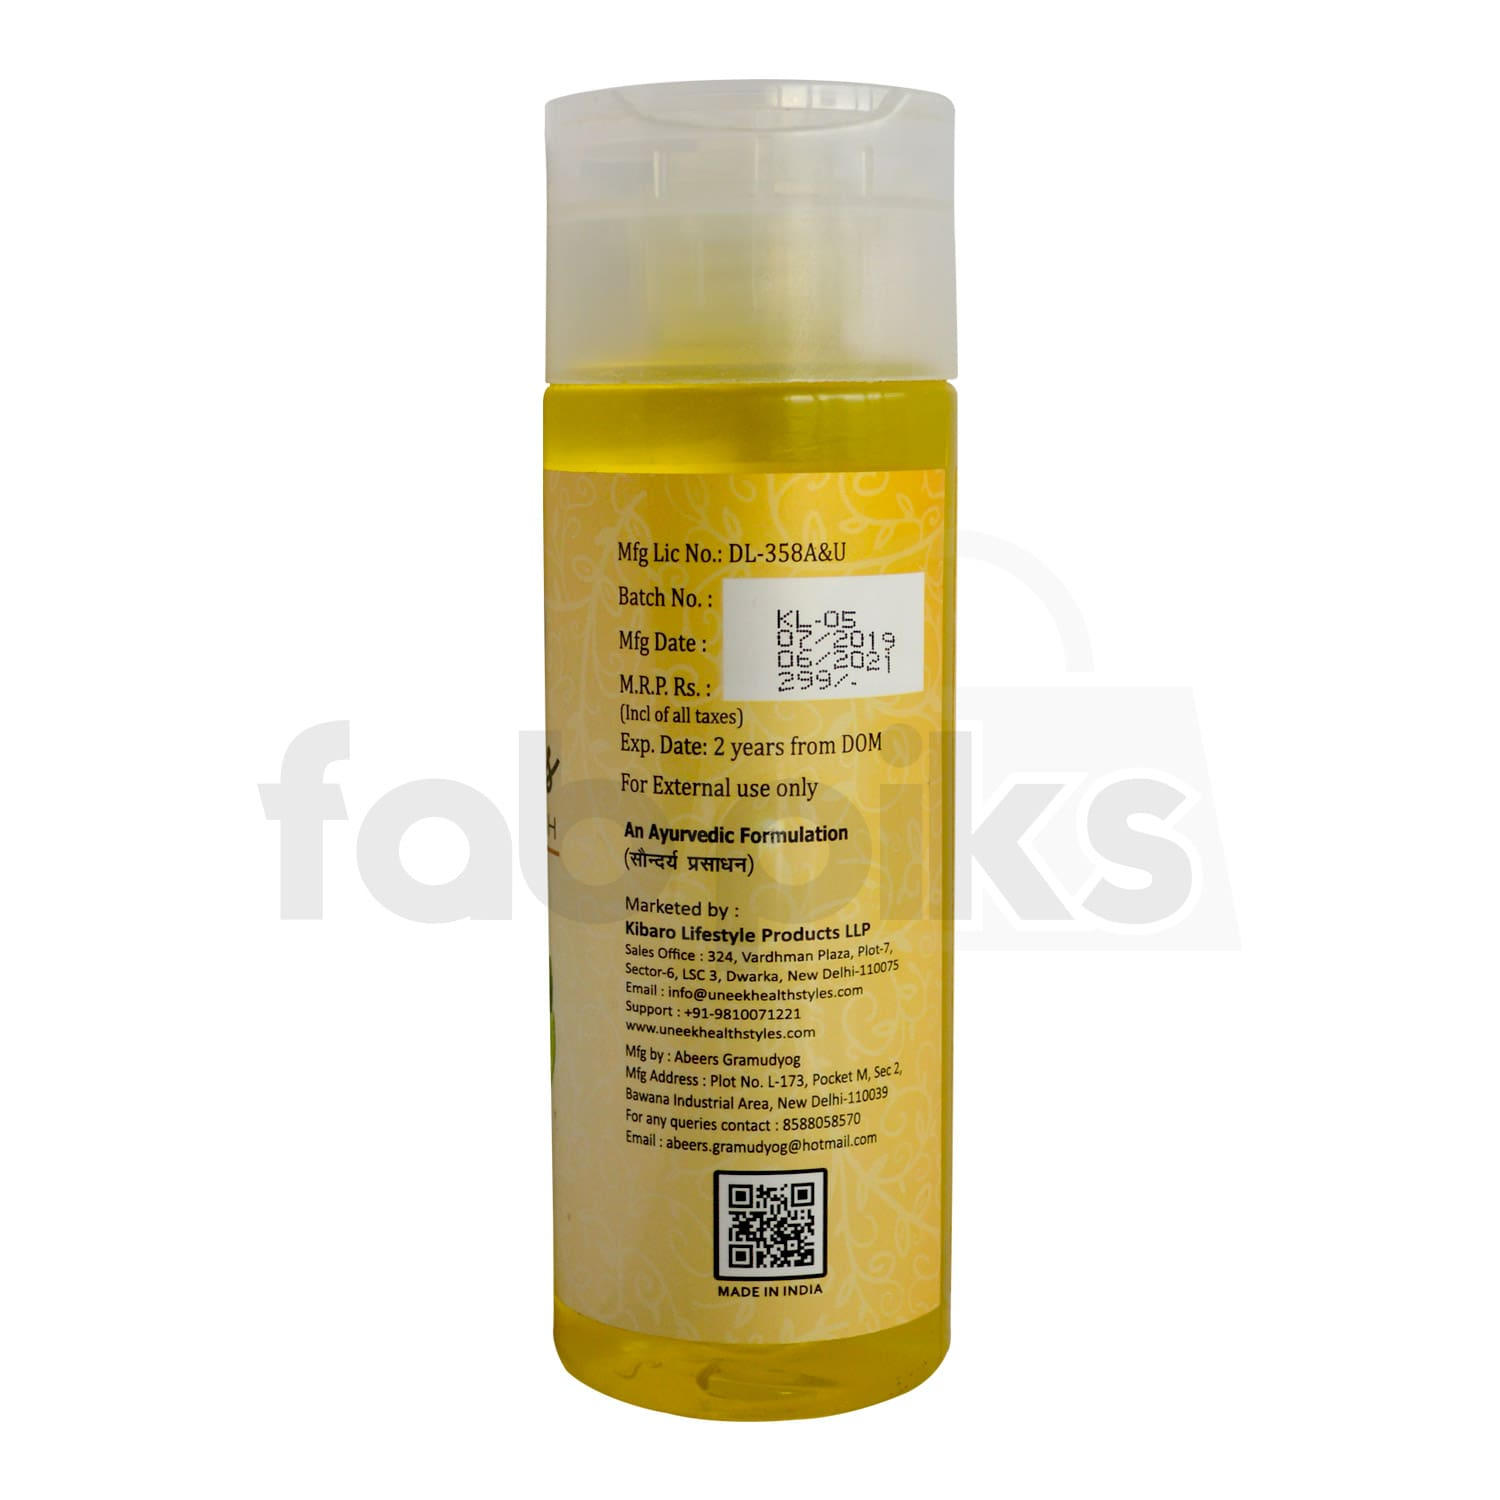 Citrus Herbal Body Wash | MRP: Rs.299